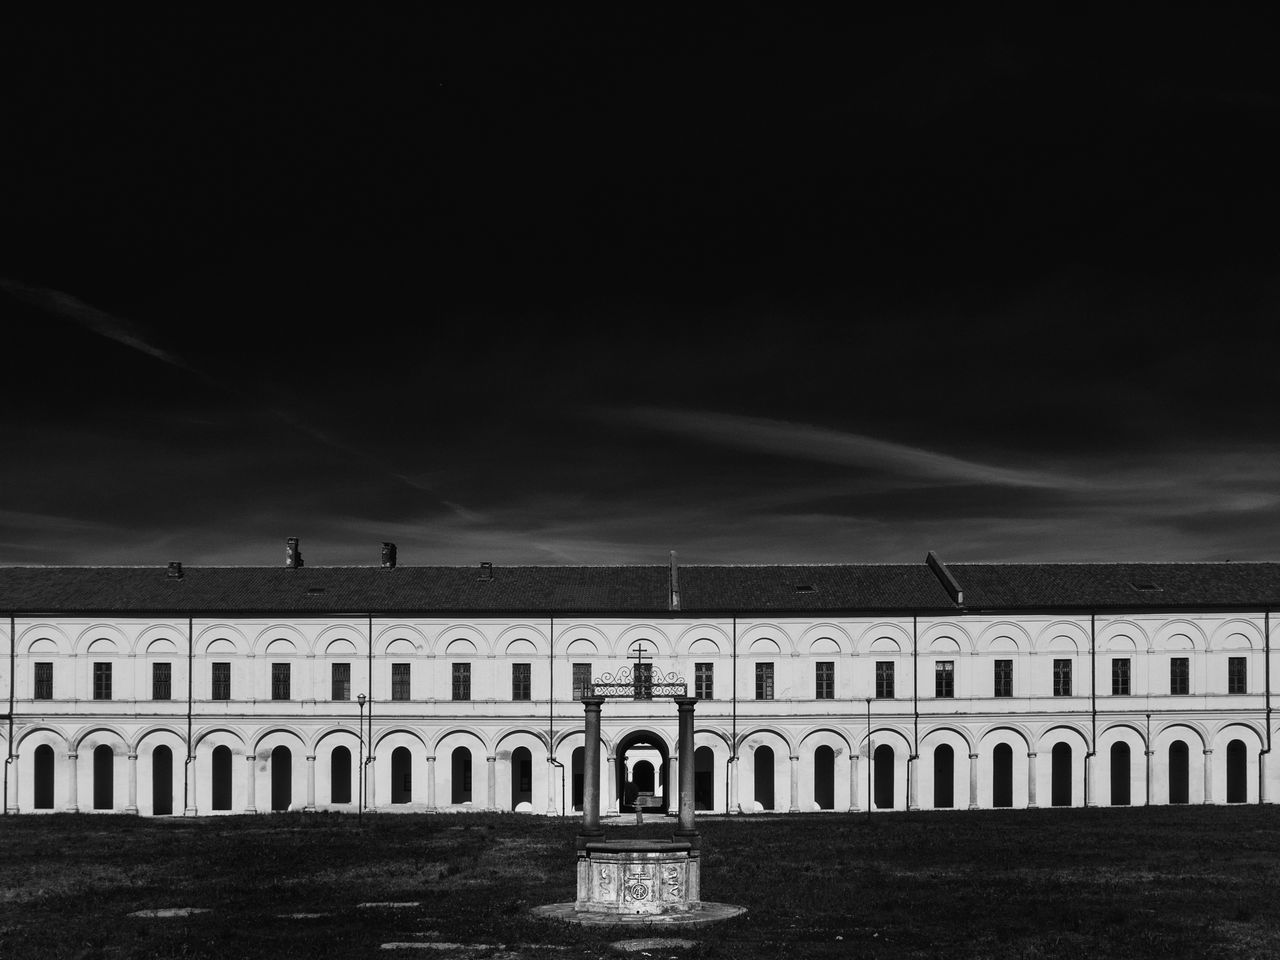 Austerità e vuoto Architecture Architecture_collection Black And White Black And White Photography Building Exterior Built Structure Cloister Emptiness Exterior Eye4black&white  Eye4photography  EyeEm EyeEm Gallery Façade Landmark Nobody Well